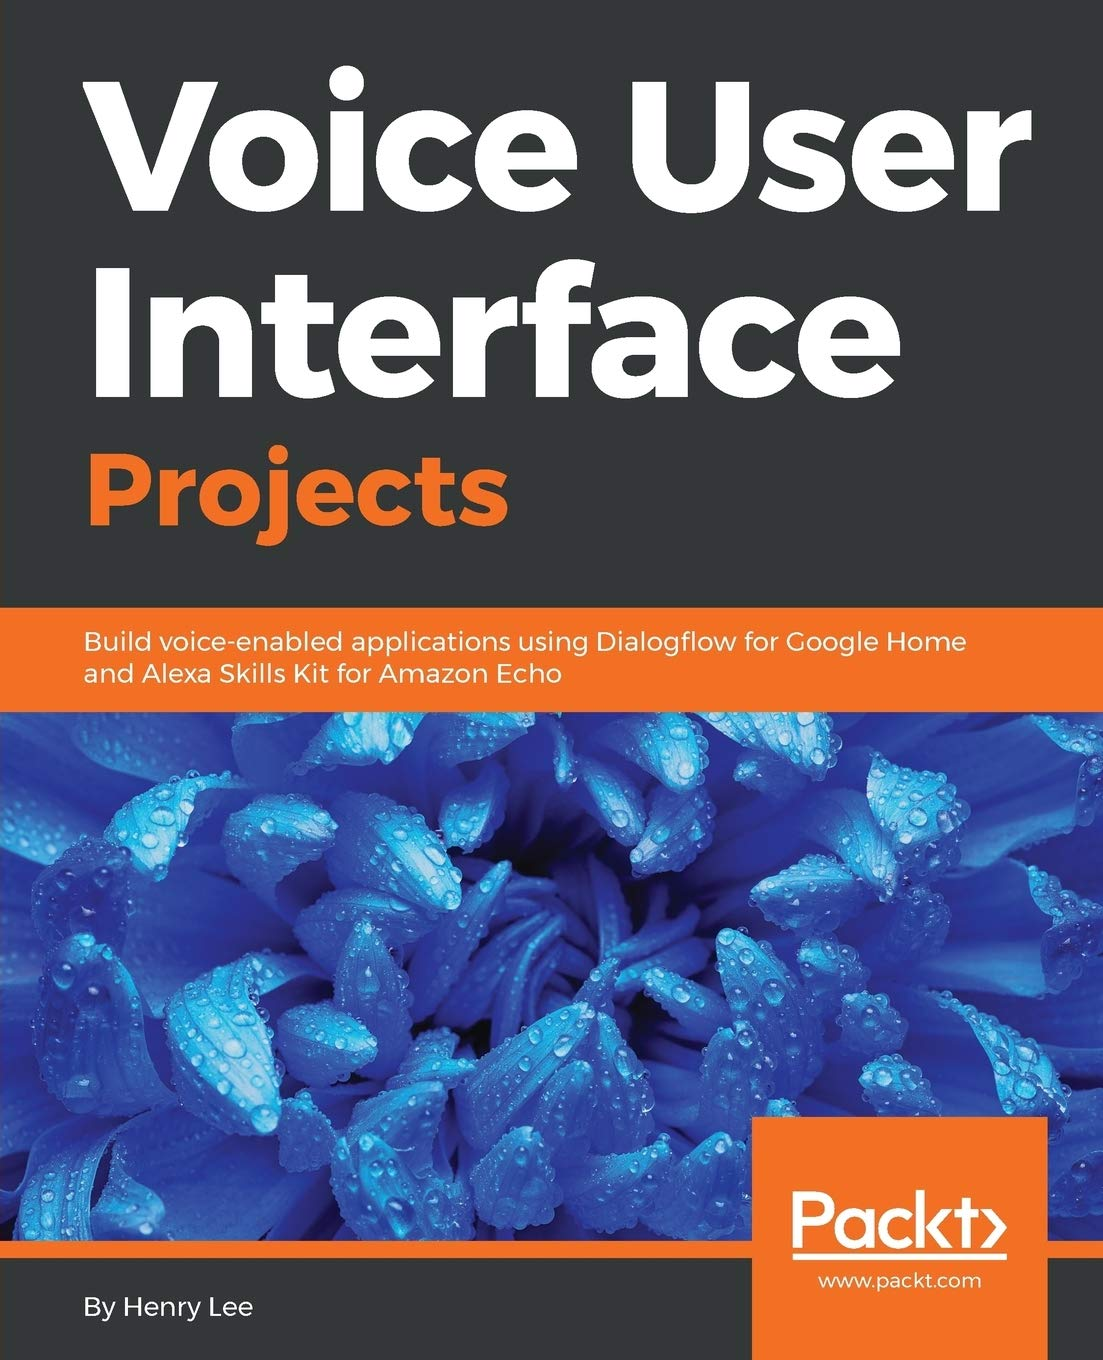 Image OfVoice User Interface Projects